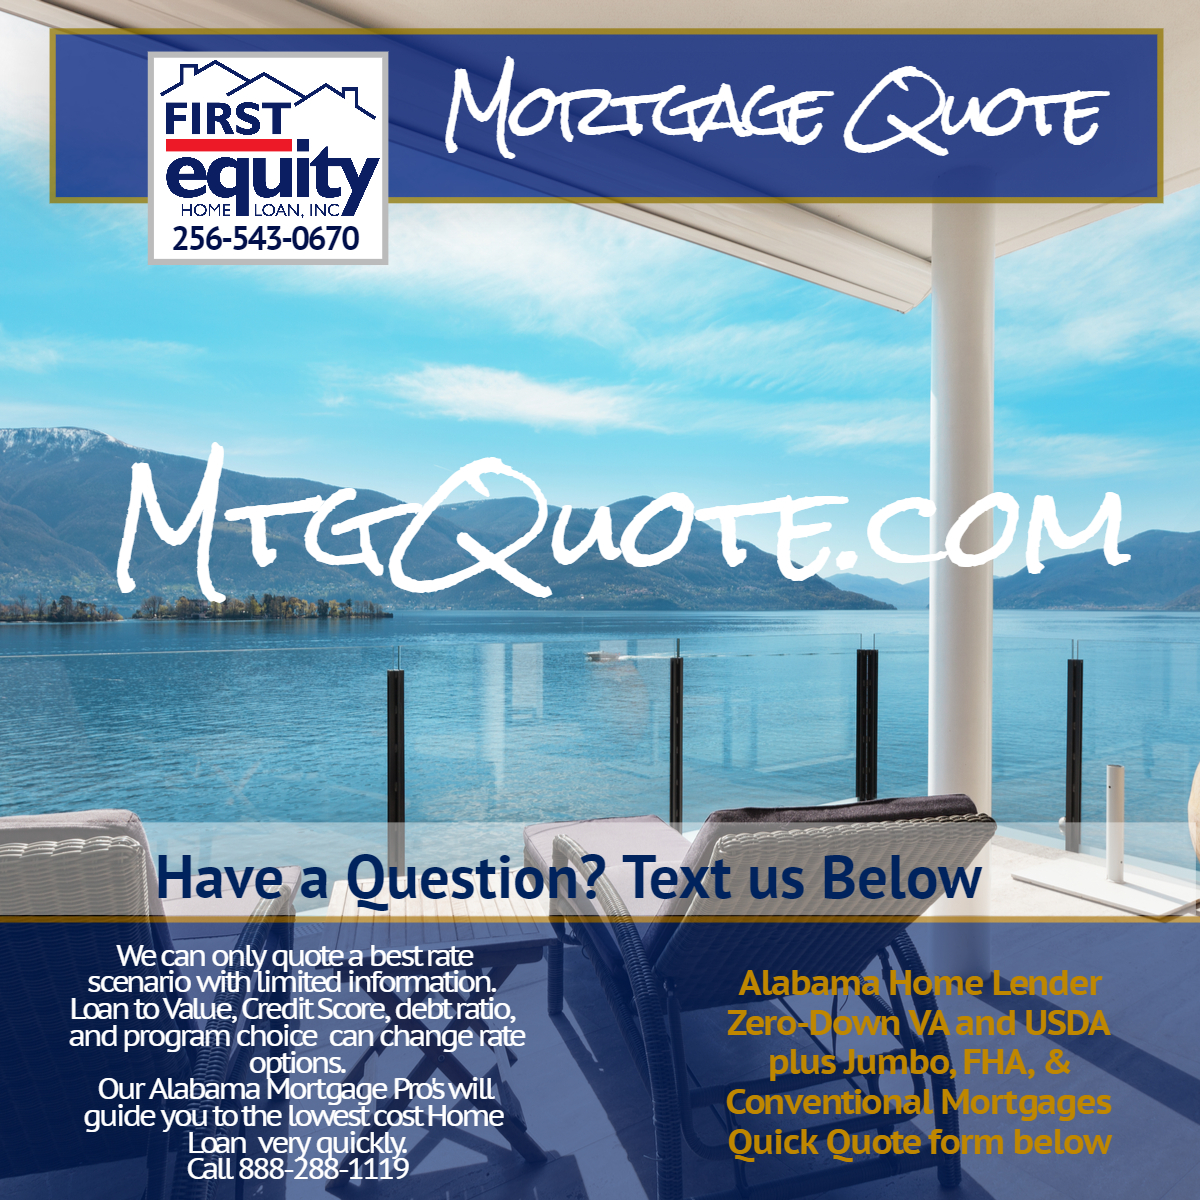 Mortgage Quote Impressive Mtgquote Mortgage Quotealabama Zero Down Va And Usda Plus